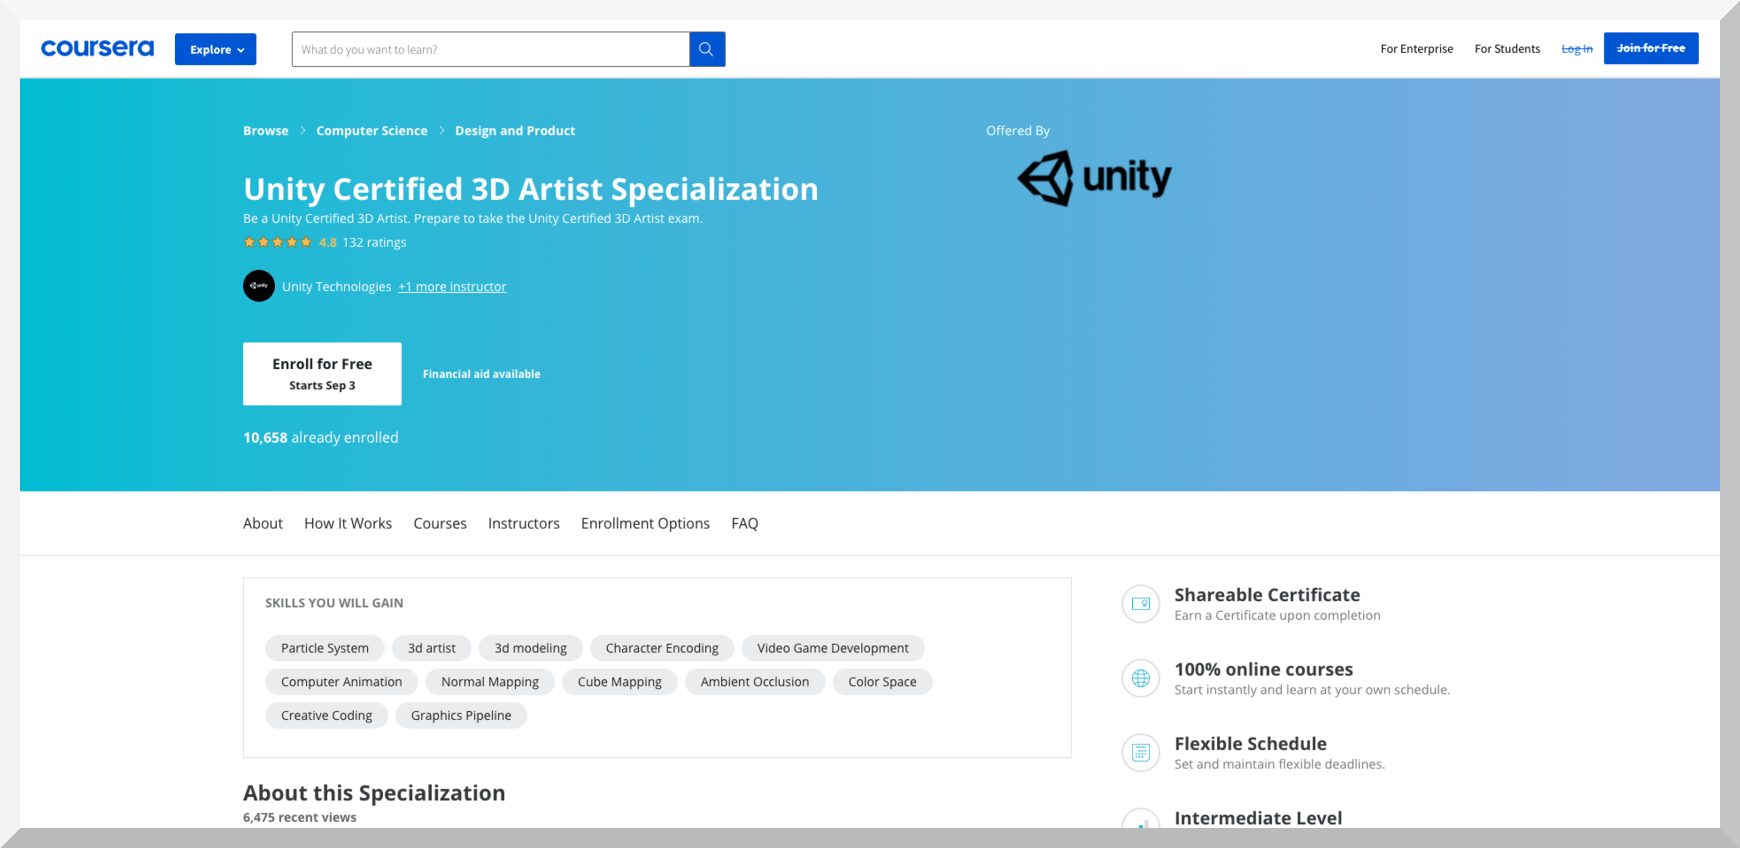 Unity Certified 3D Artist Specialization by Unity – Coursera